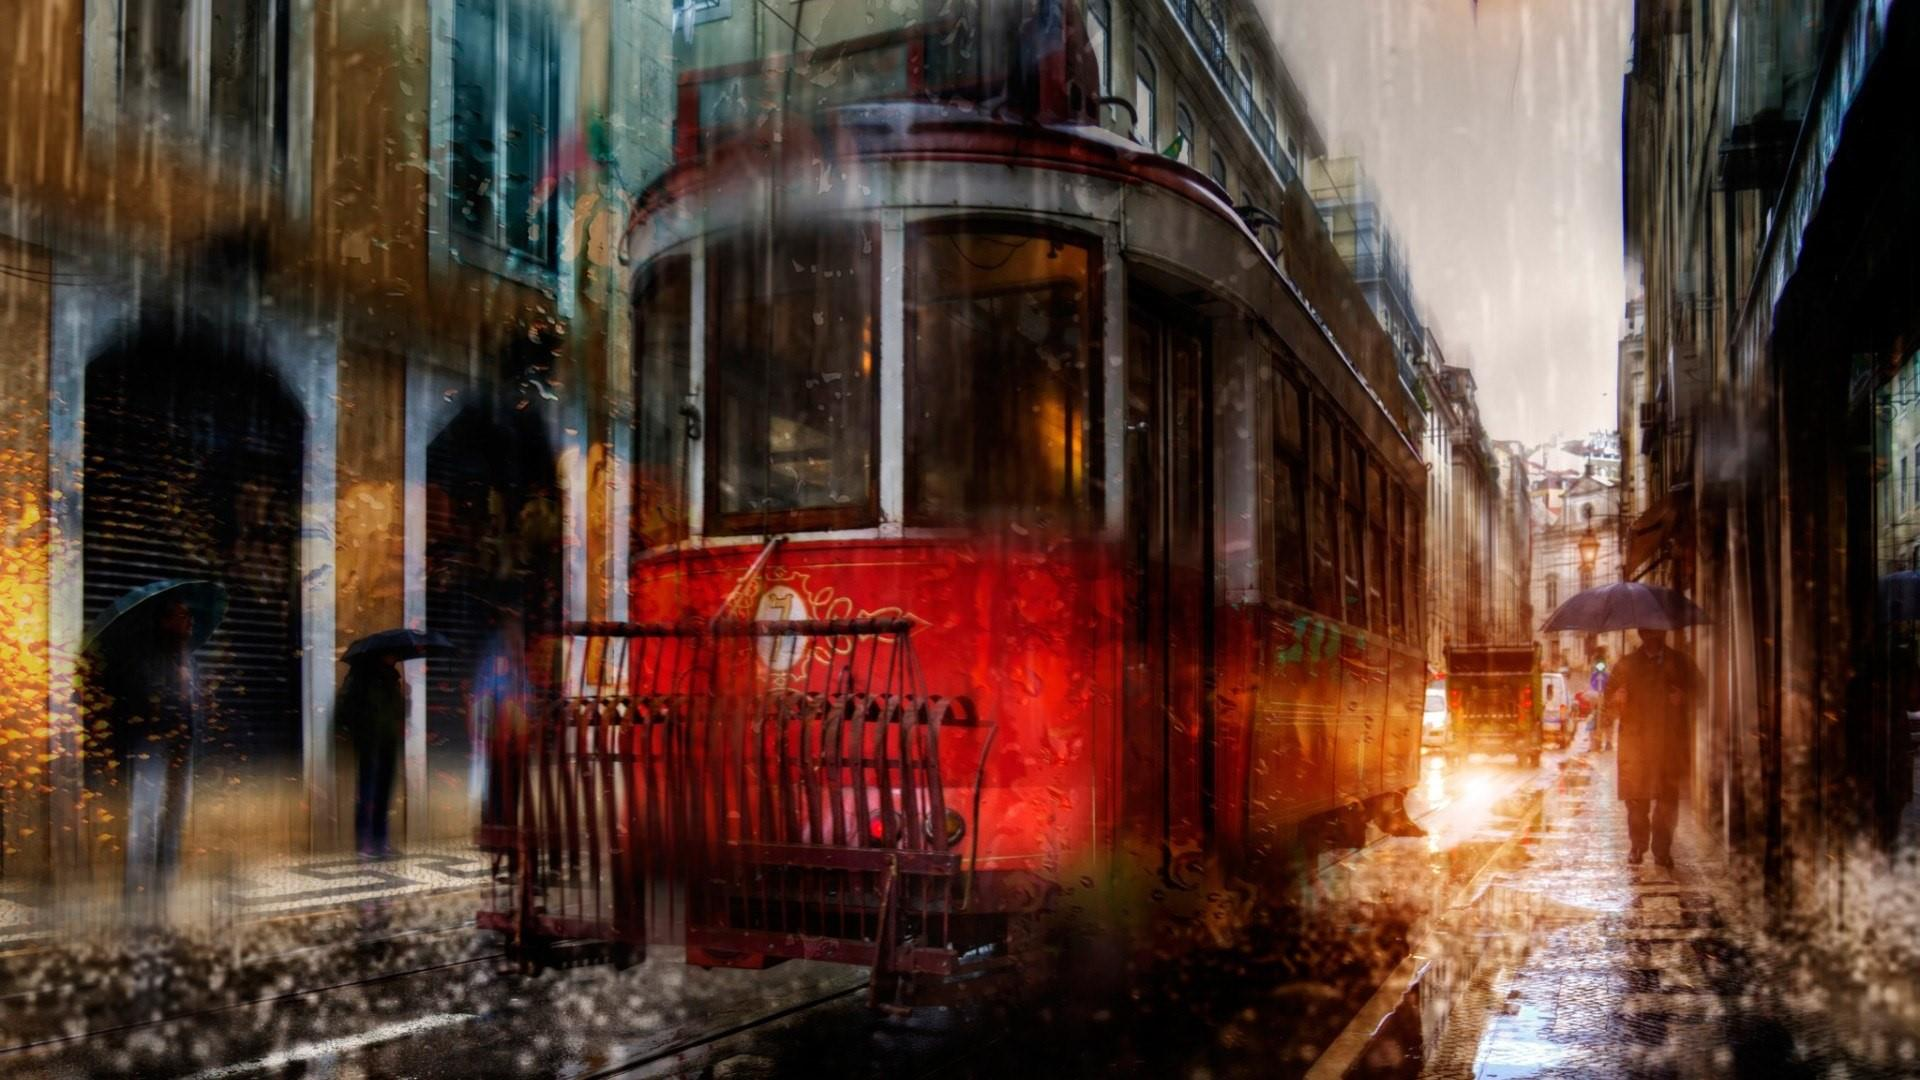 Rainy Day In The City HD Wallpaper - backiee - Free Ultra ...